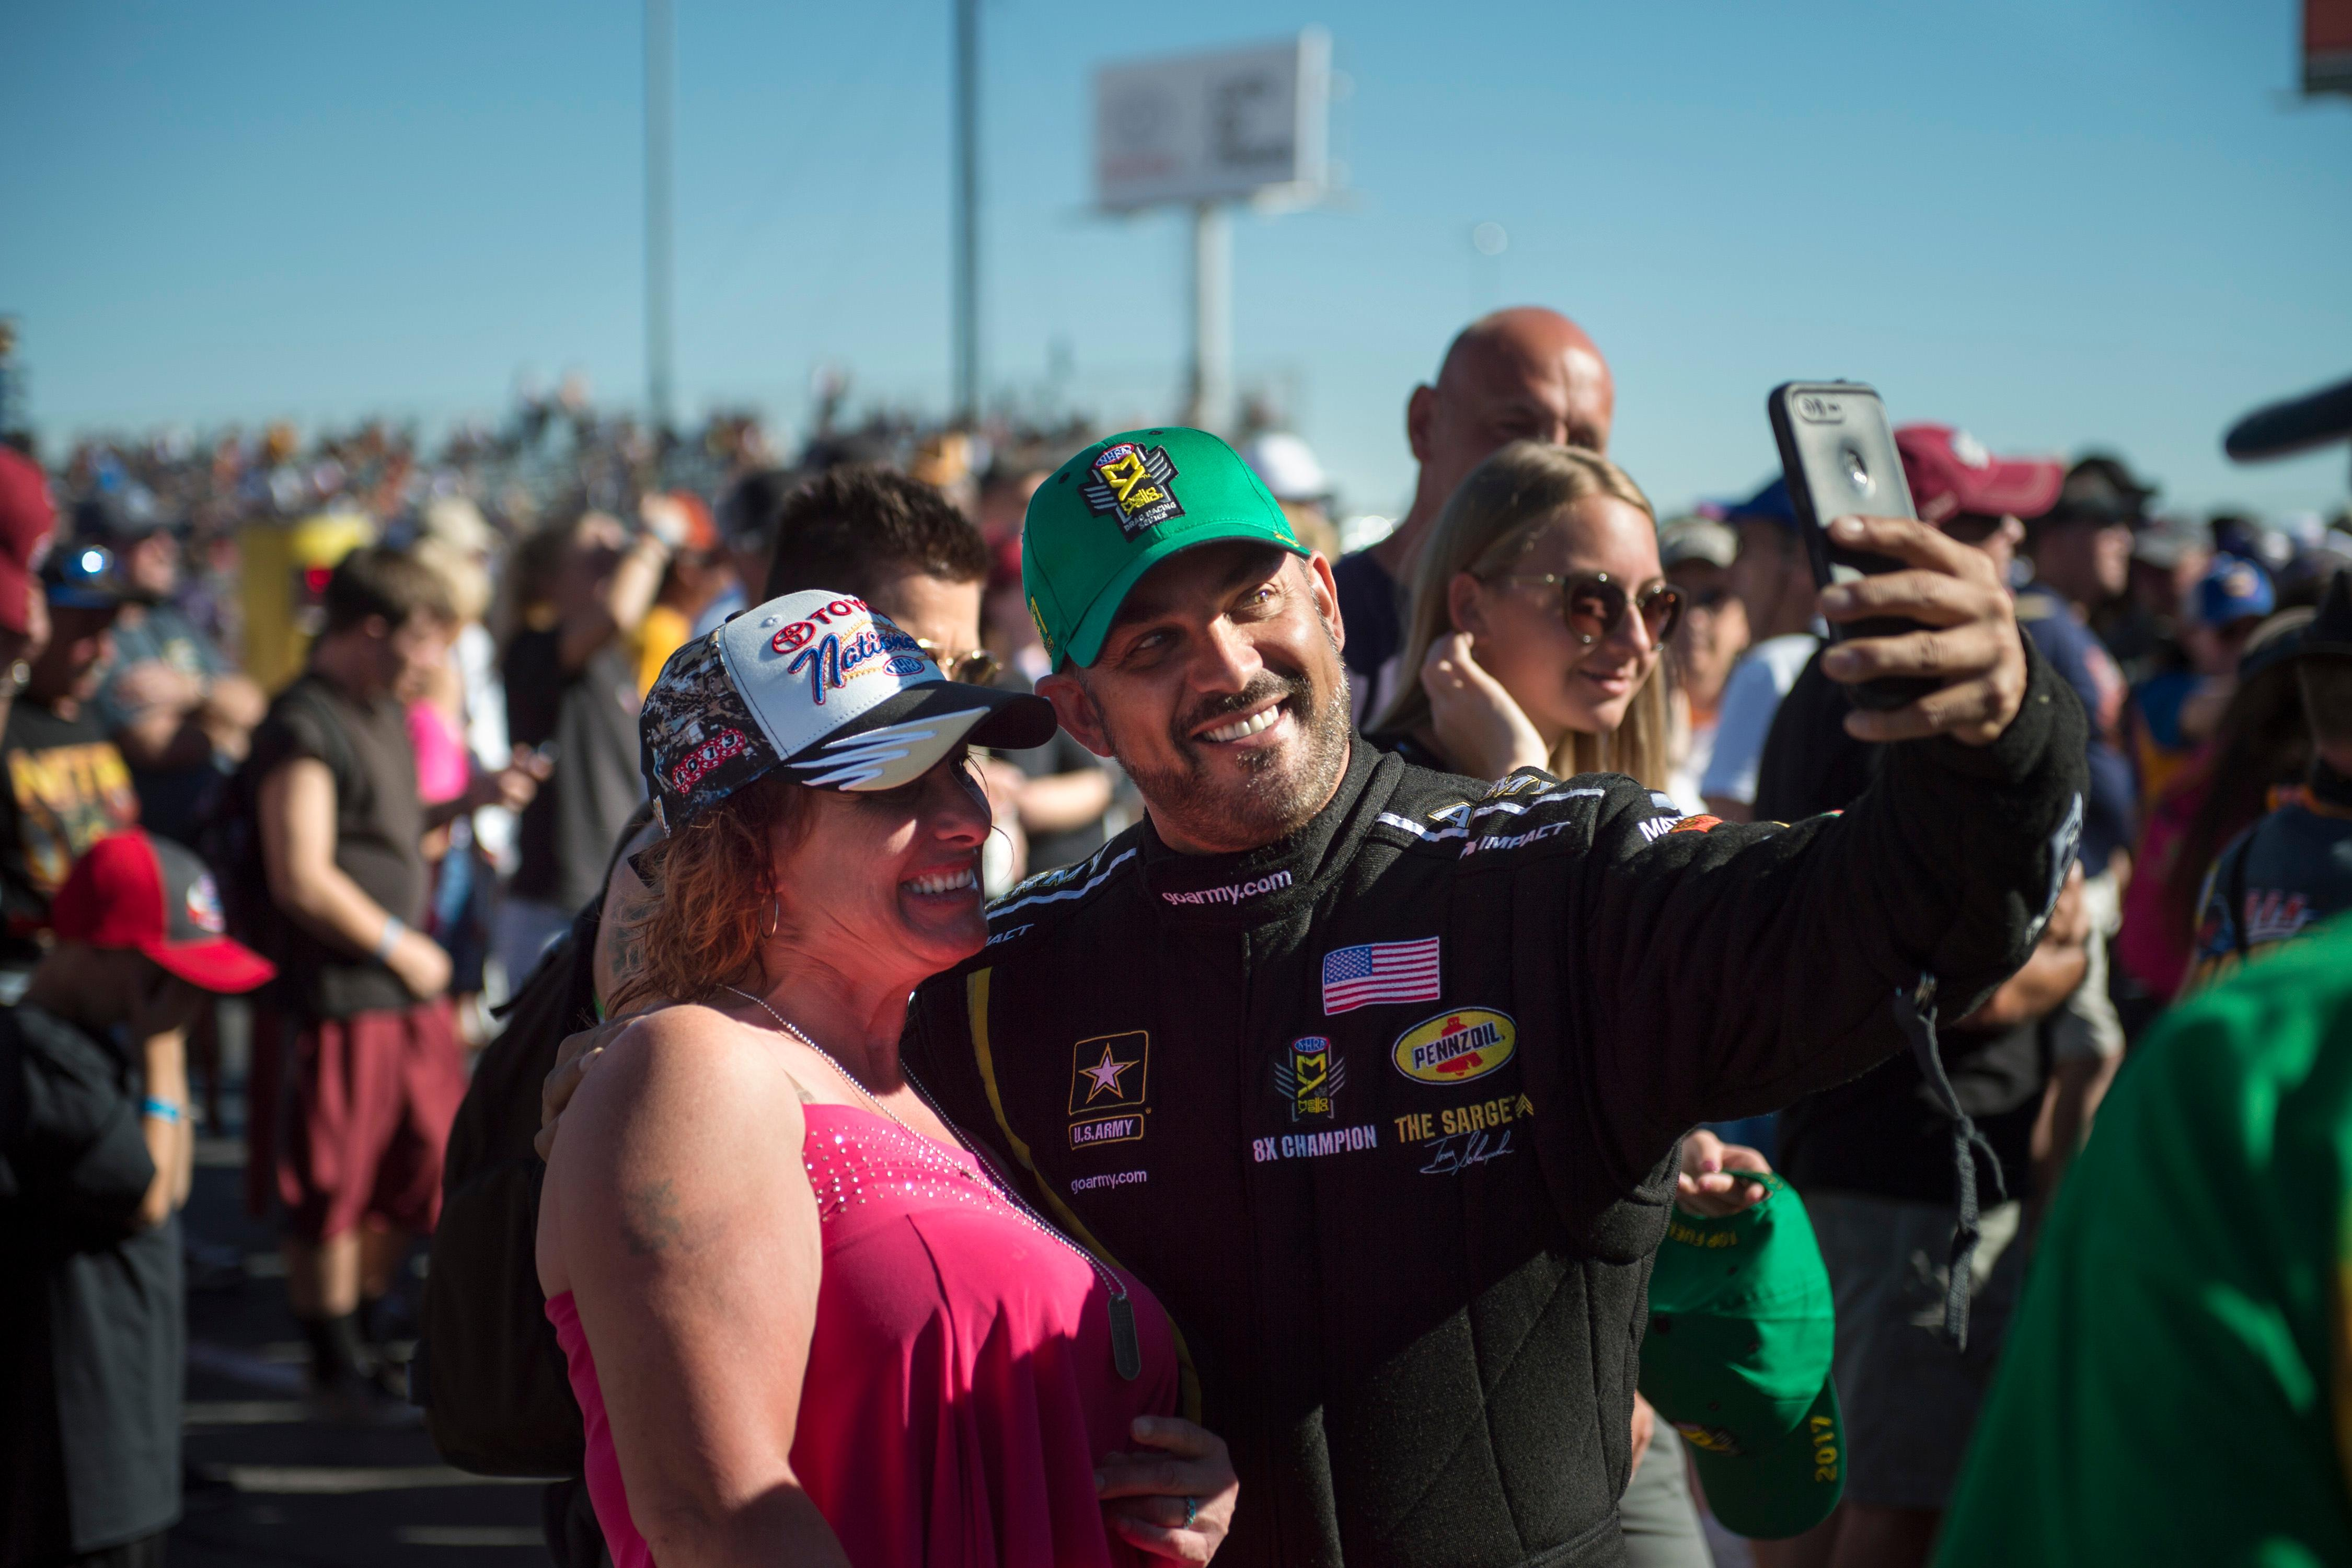 Top Fuel driver Tiny Schumacher takes a selfie with a fan before the start of the NHRA Toyota Nationals Sunday, October 29, 2017, at The Strip at the Las Vegas Motor Speedway. CREDIT: Sam Morris/Las Vegas News Bureau